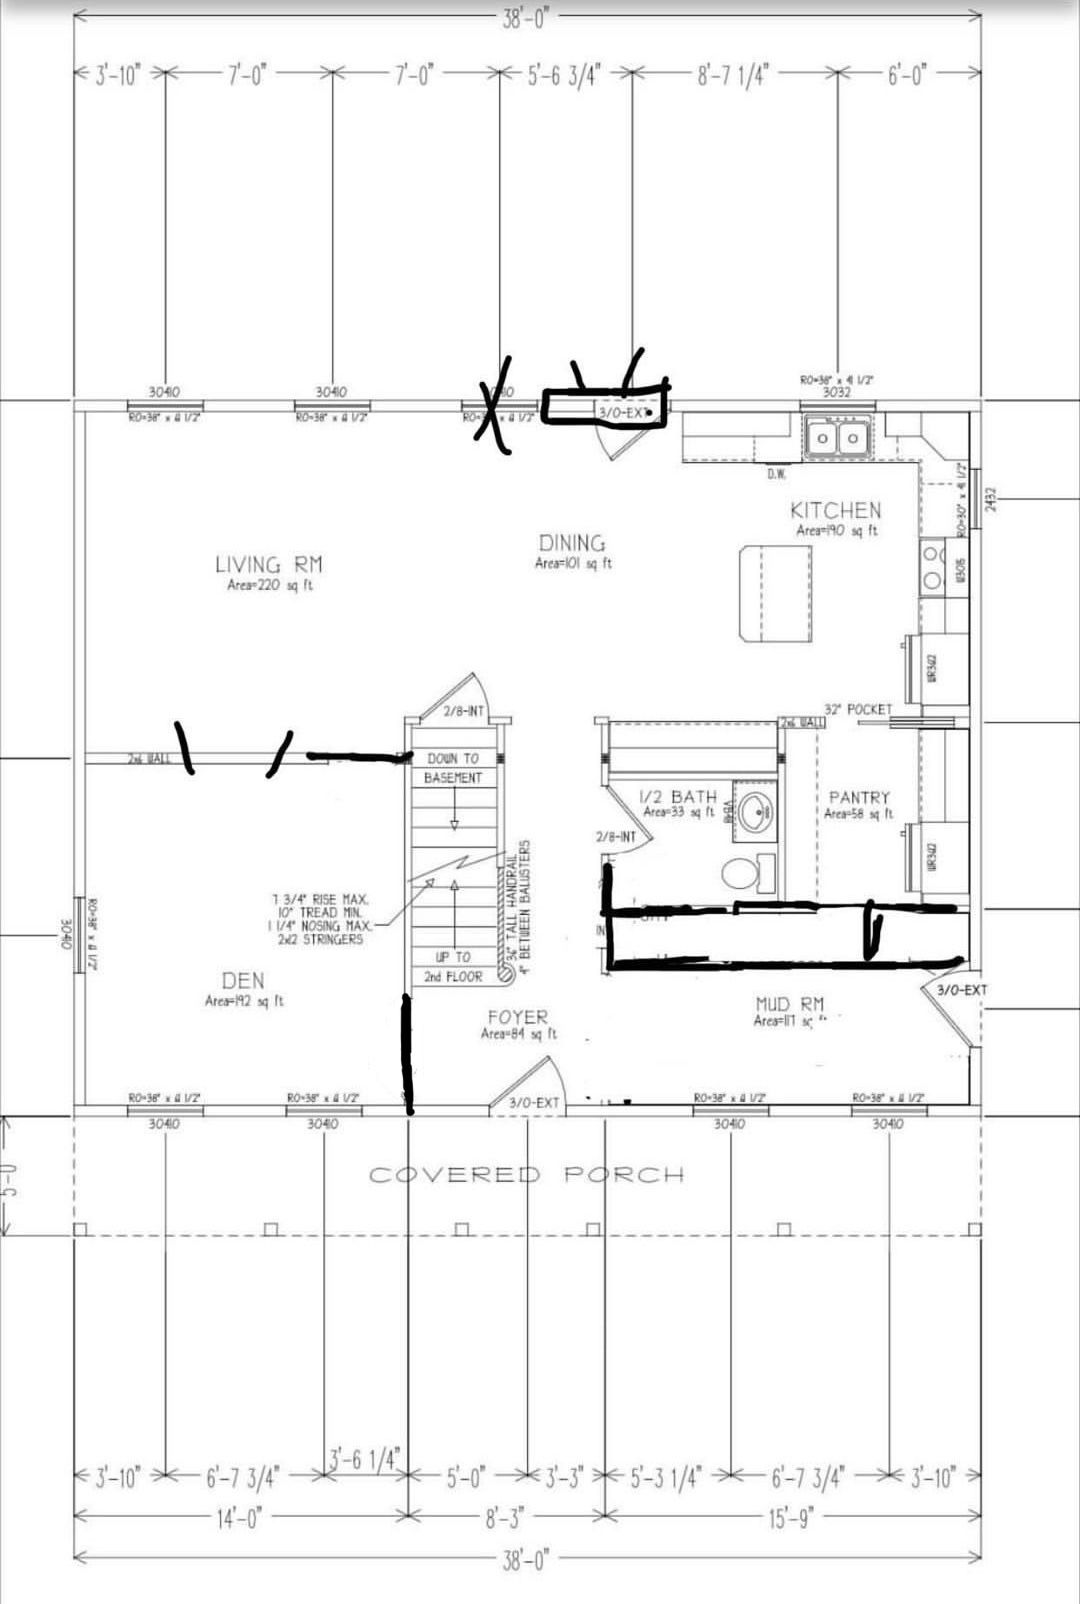 Pin By Ashley York On House In 2020 Floor Plans Diagram House